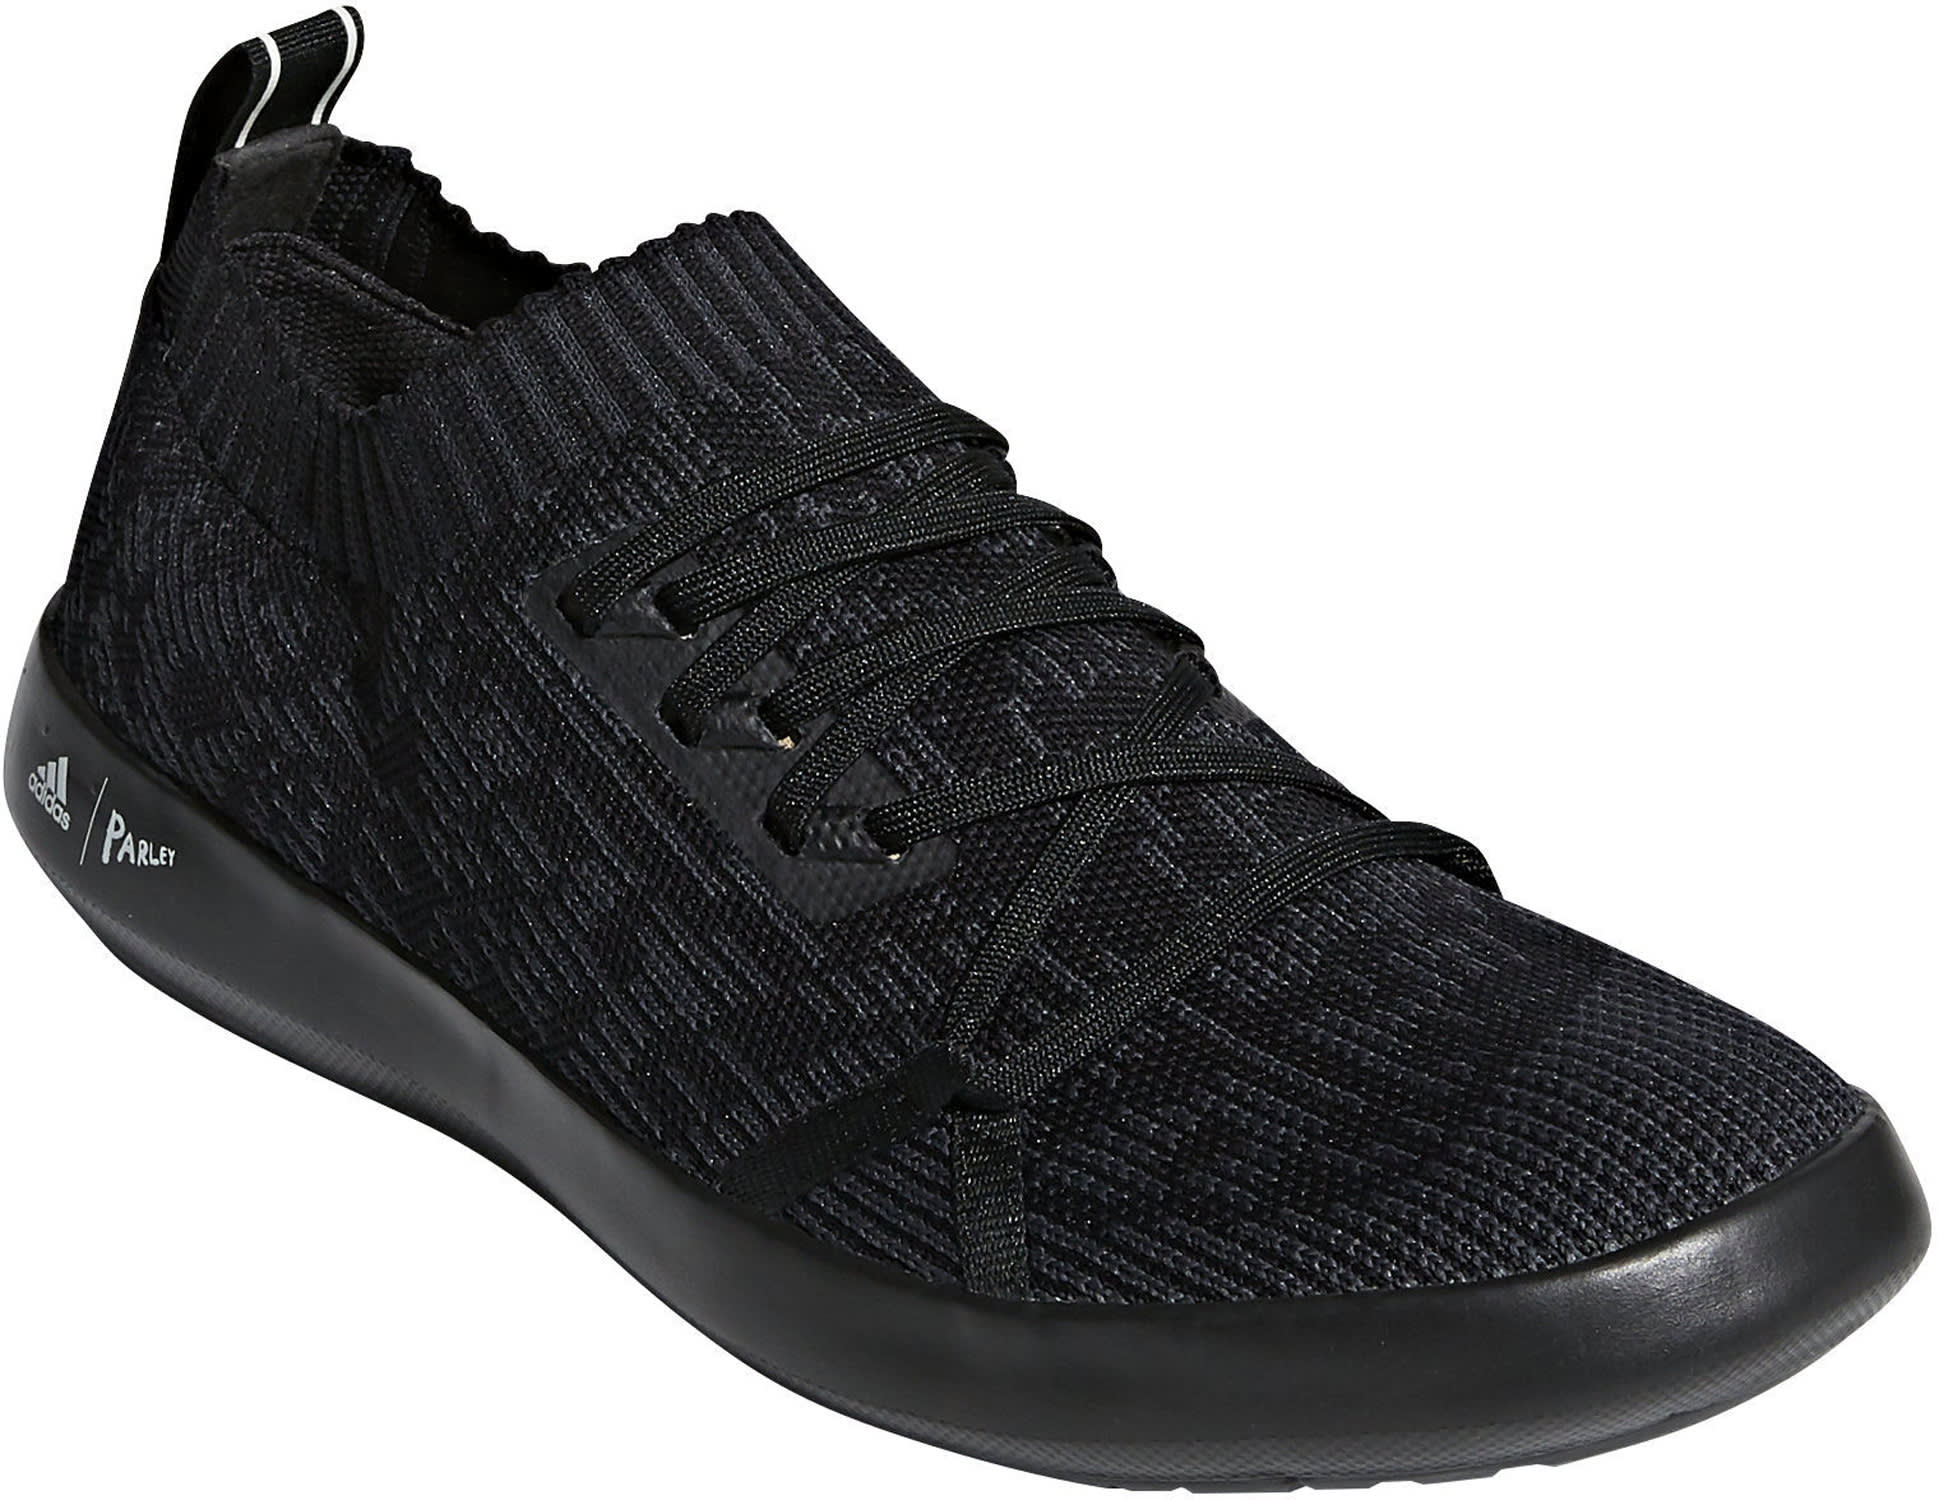 Dlx Adidas 2 Thumbnail Boat Water Parley Terrex Shoes SwC7Hqxgw